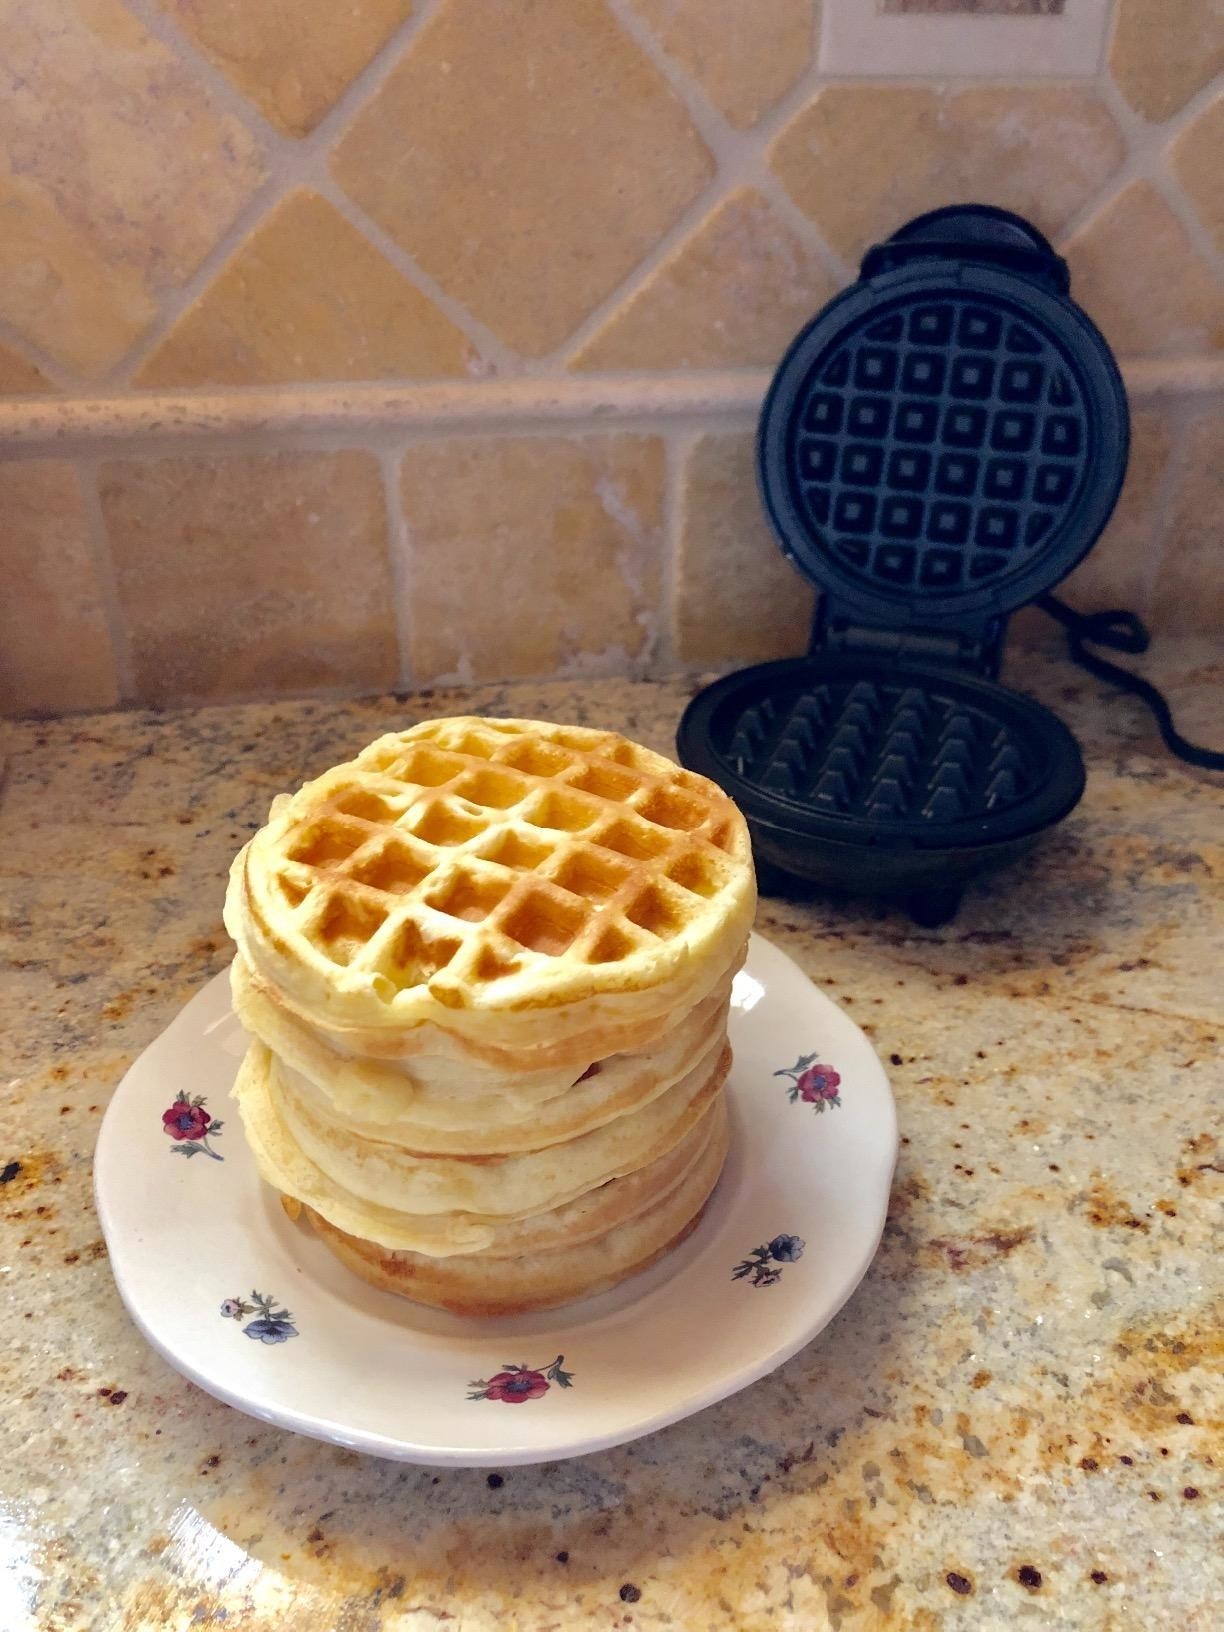 Stack of waffles, which are about the size of Eggo waffles, next to the waffle maker